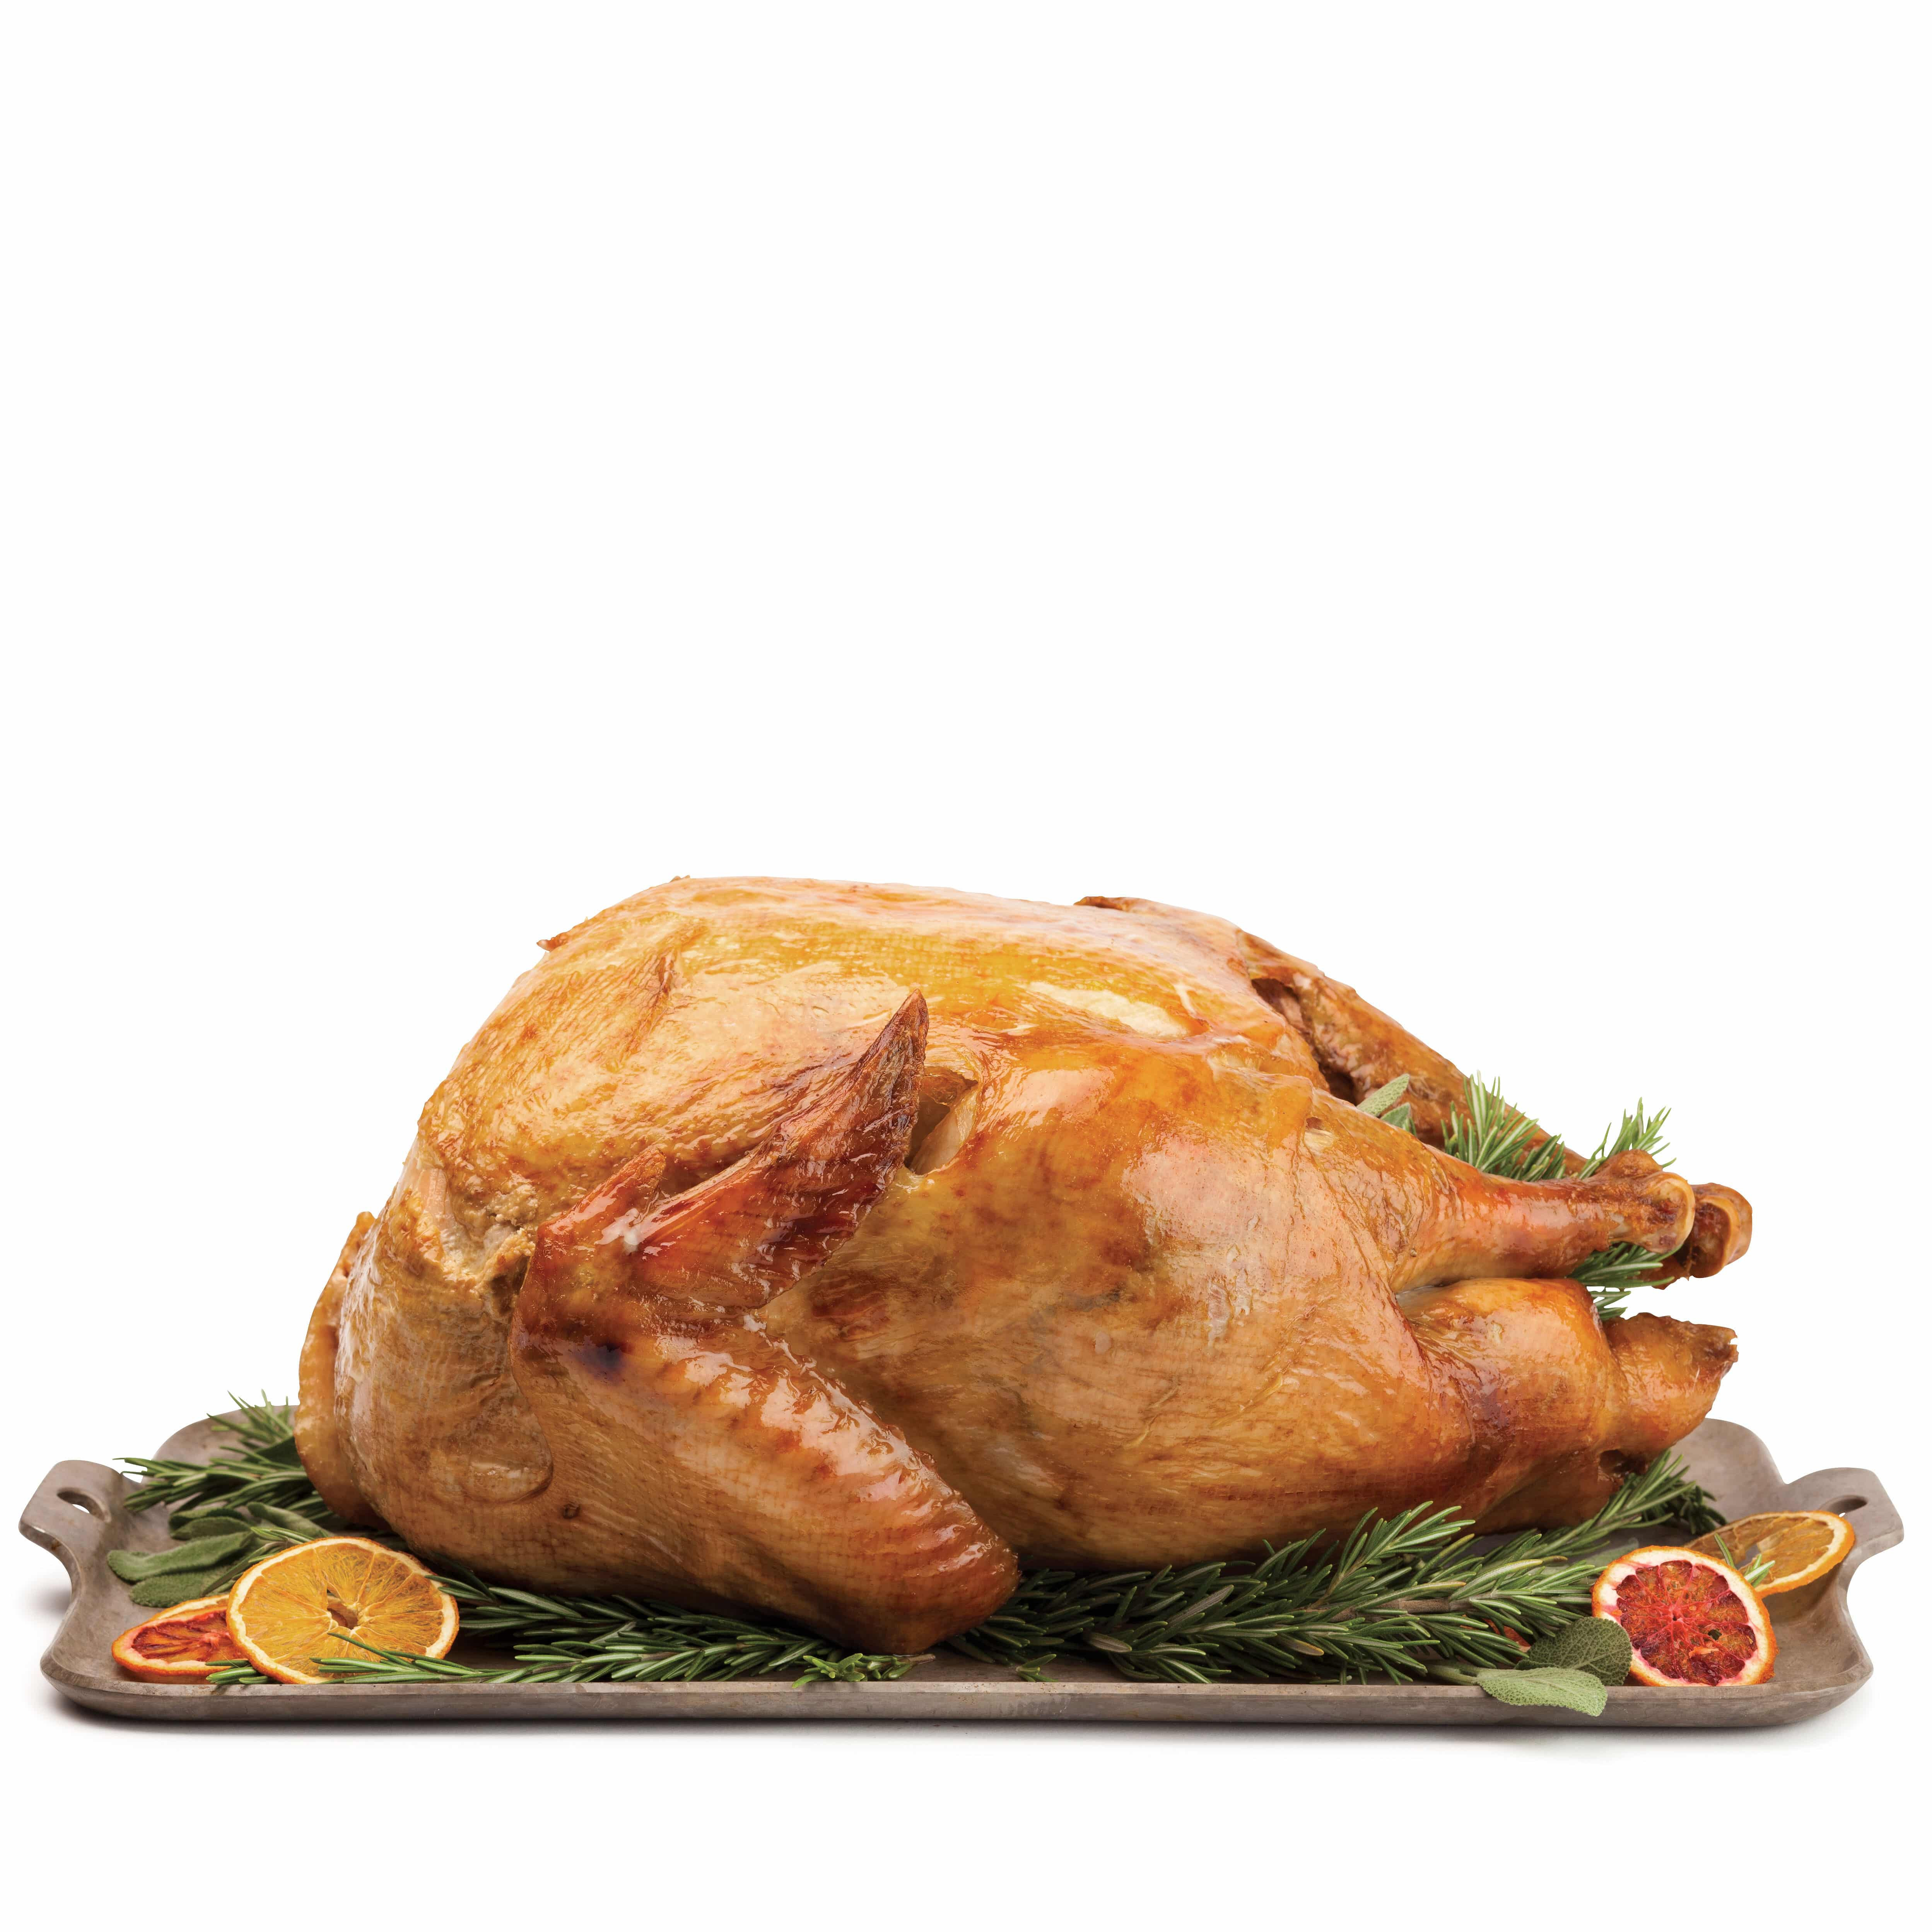 Order Cooked Turkey For Thanksgiving  Cheatsgiving How To Order Thanksgiving Turkey